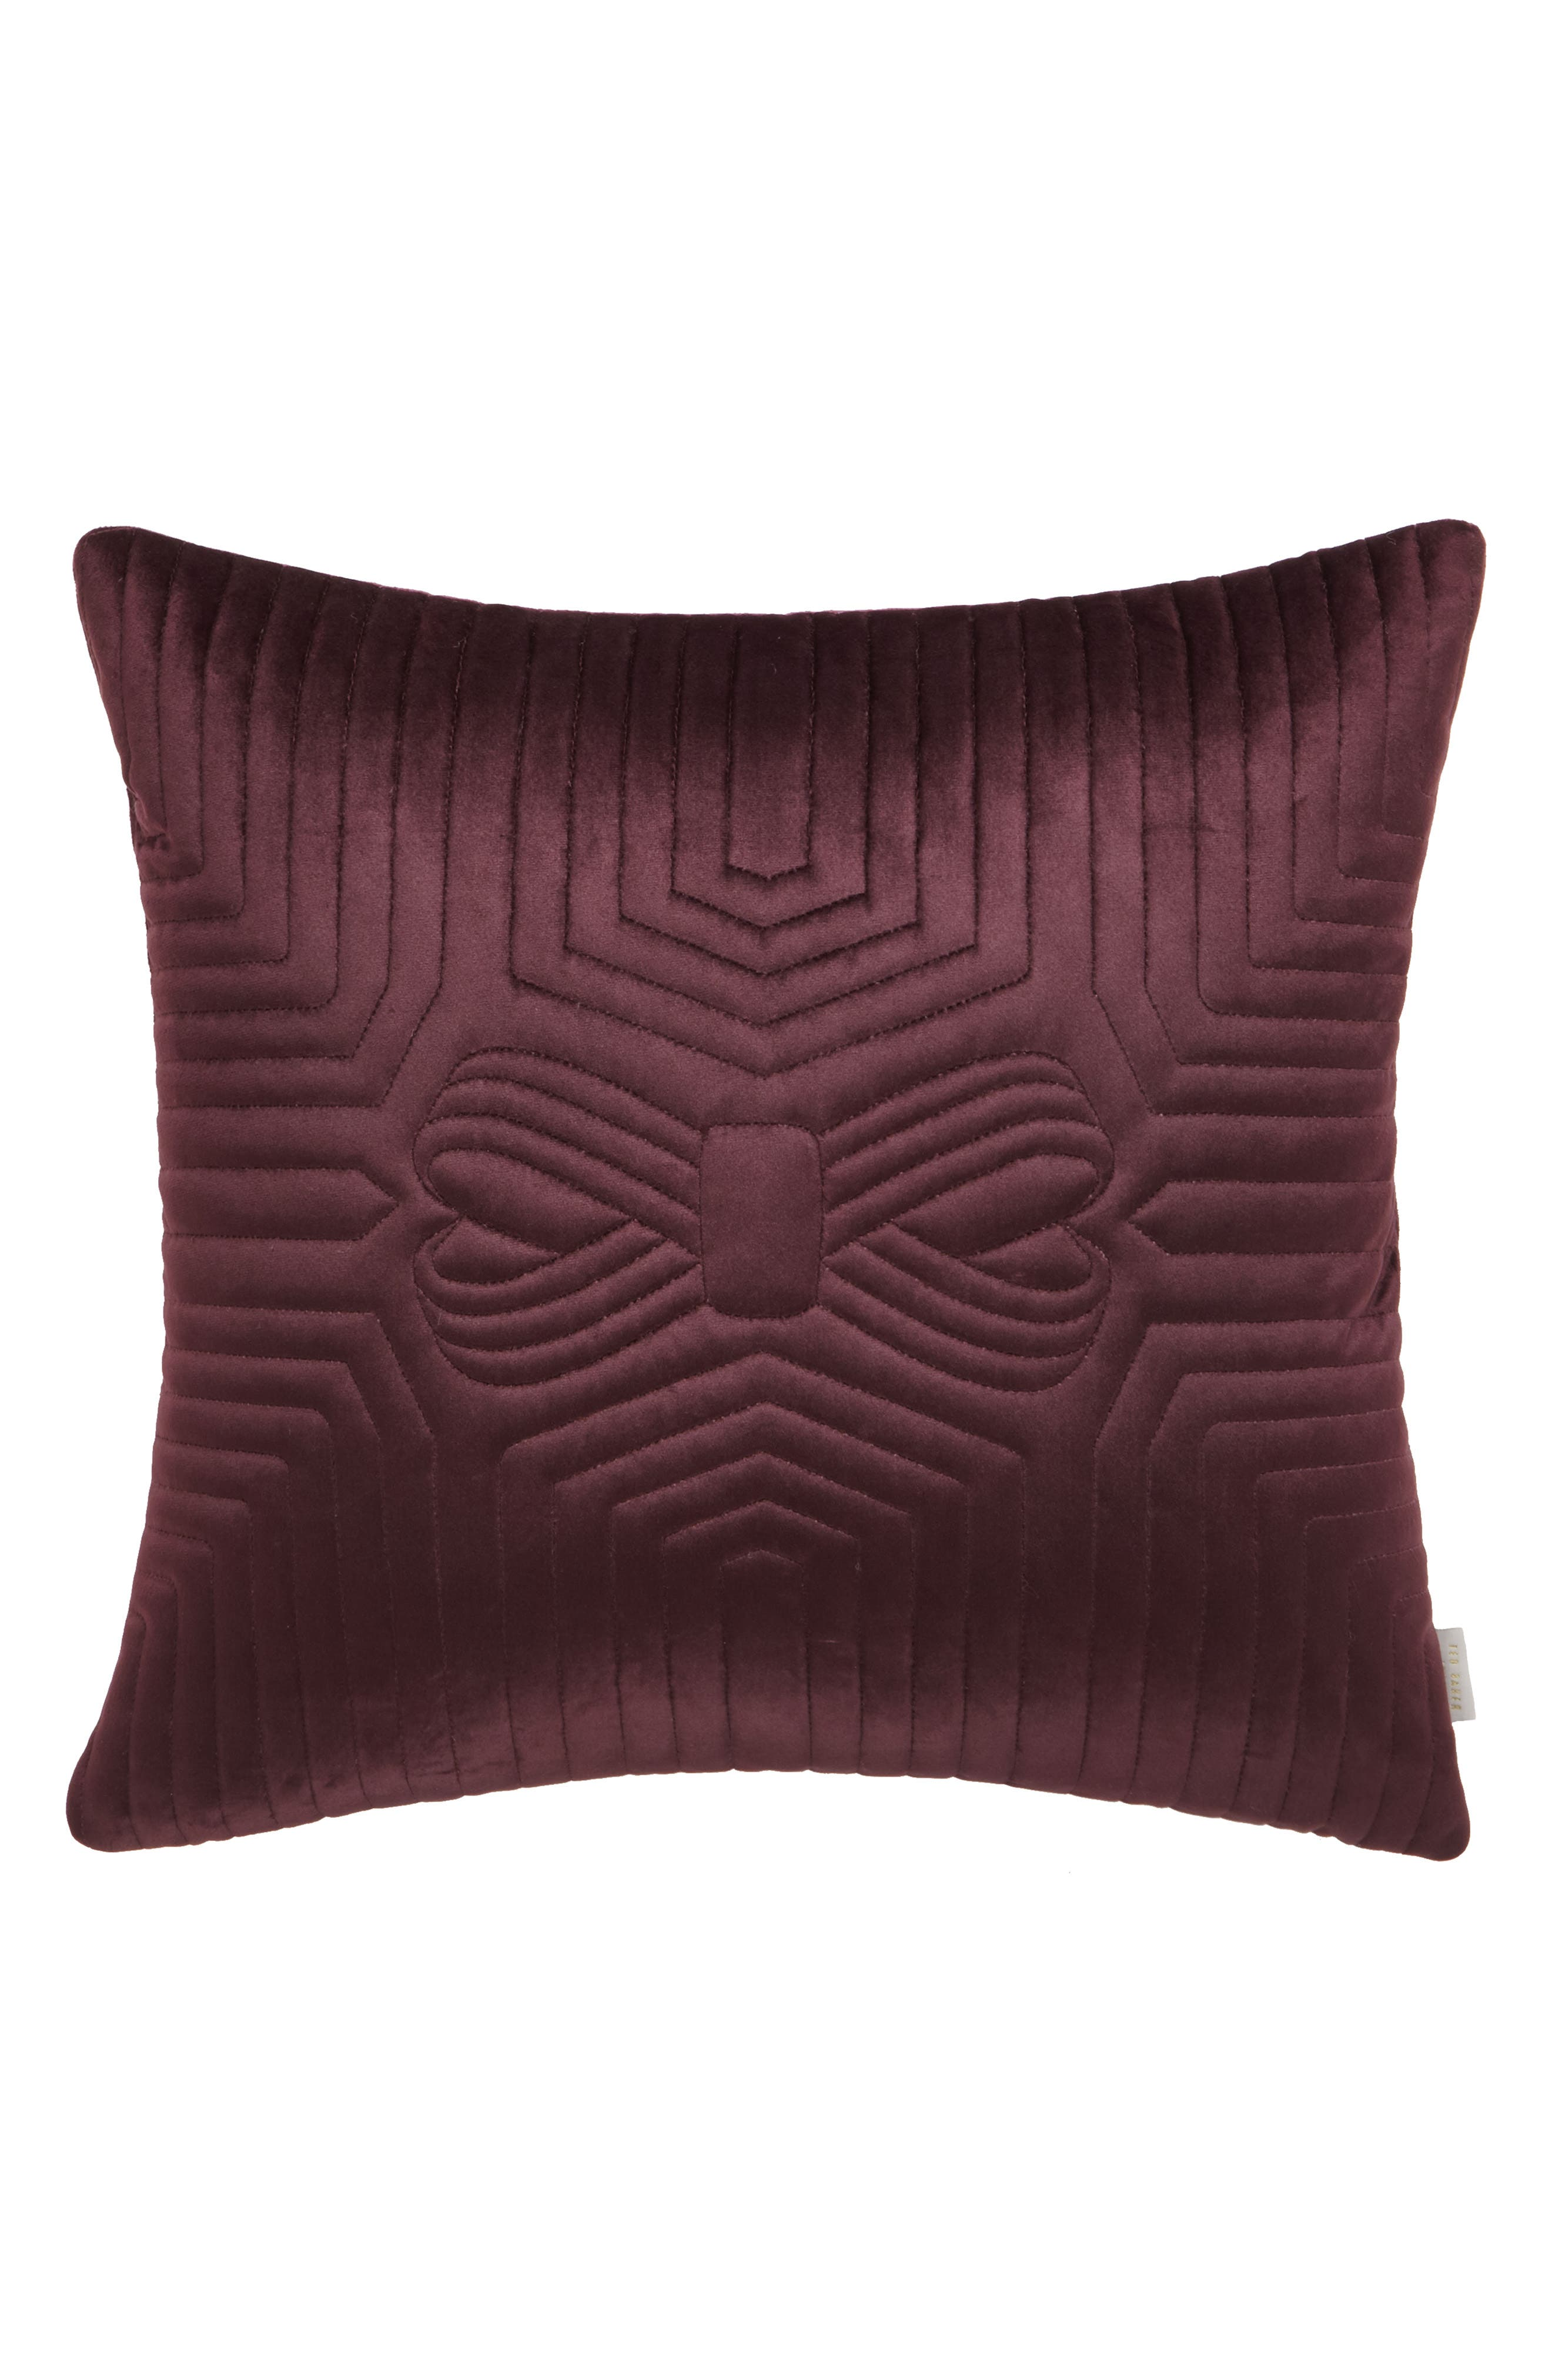 Main Image - Ted Baker London Quilted Velvet Accent Pillow